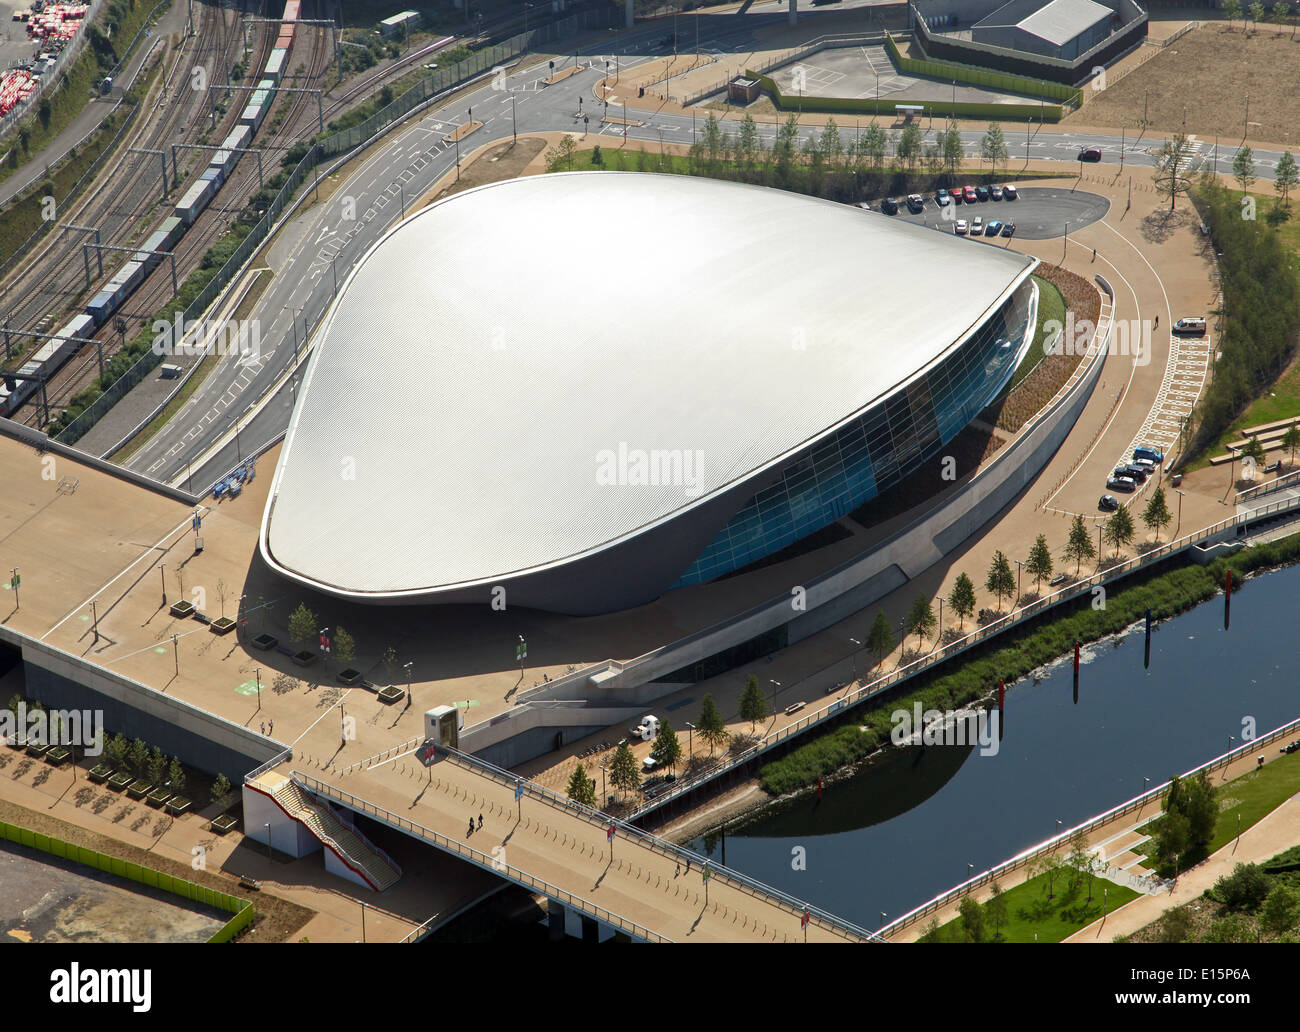 aerial view of the Olympic Velodrome pringle building, officially Lee Valley VeloPark, built for the 2012 London Olympics - Stock Image